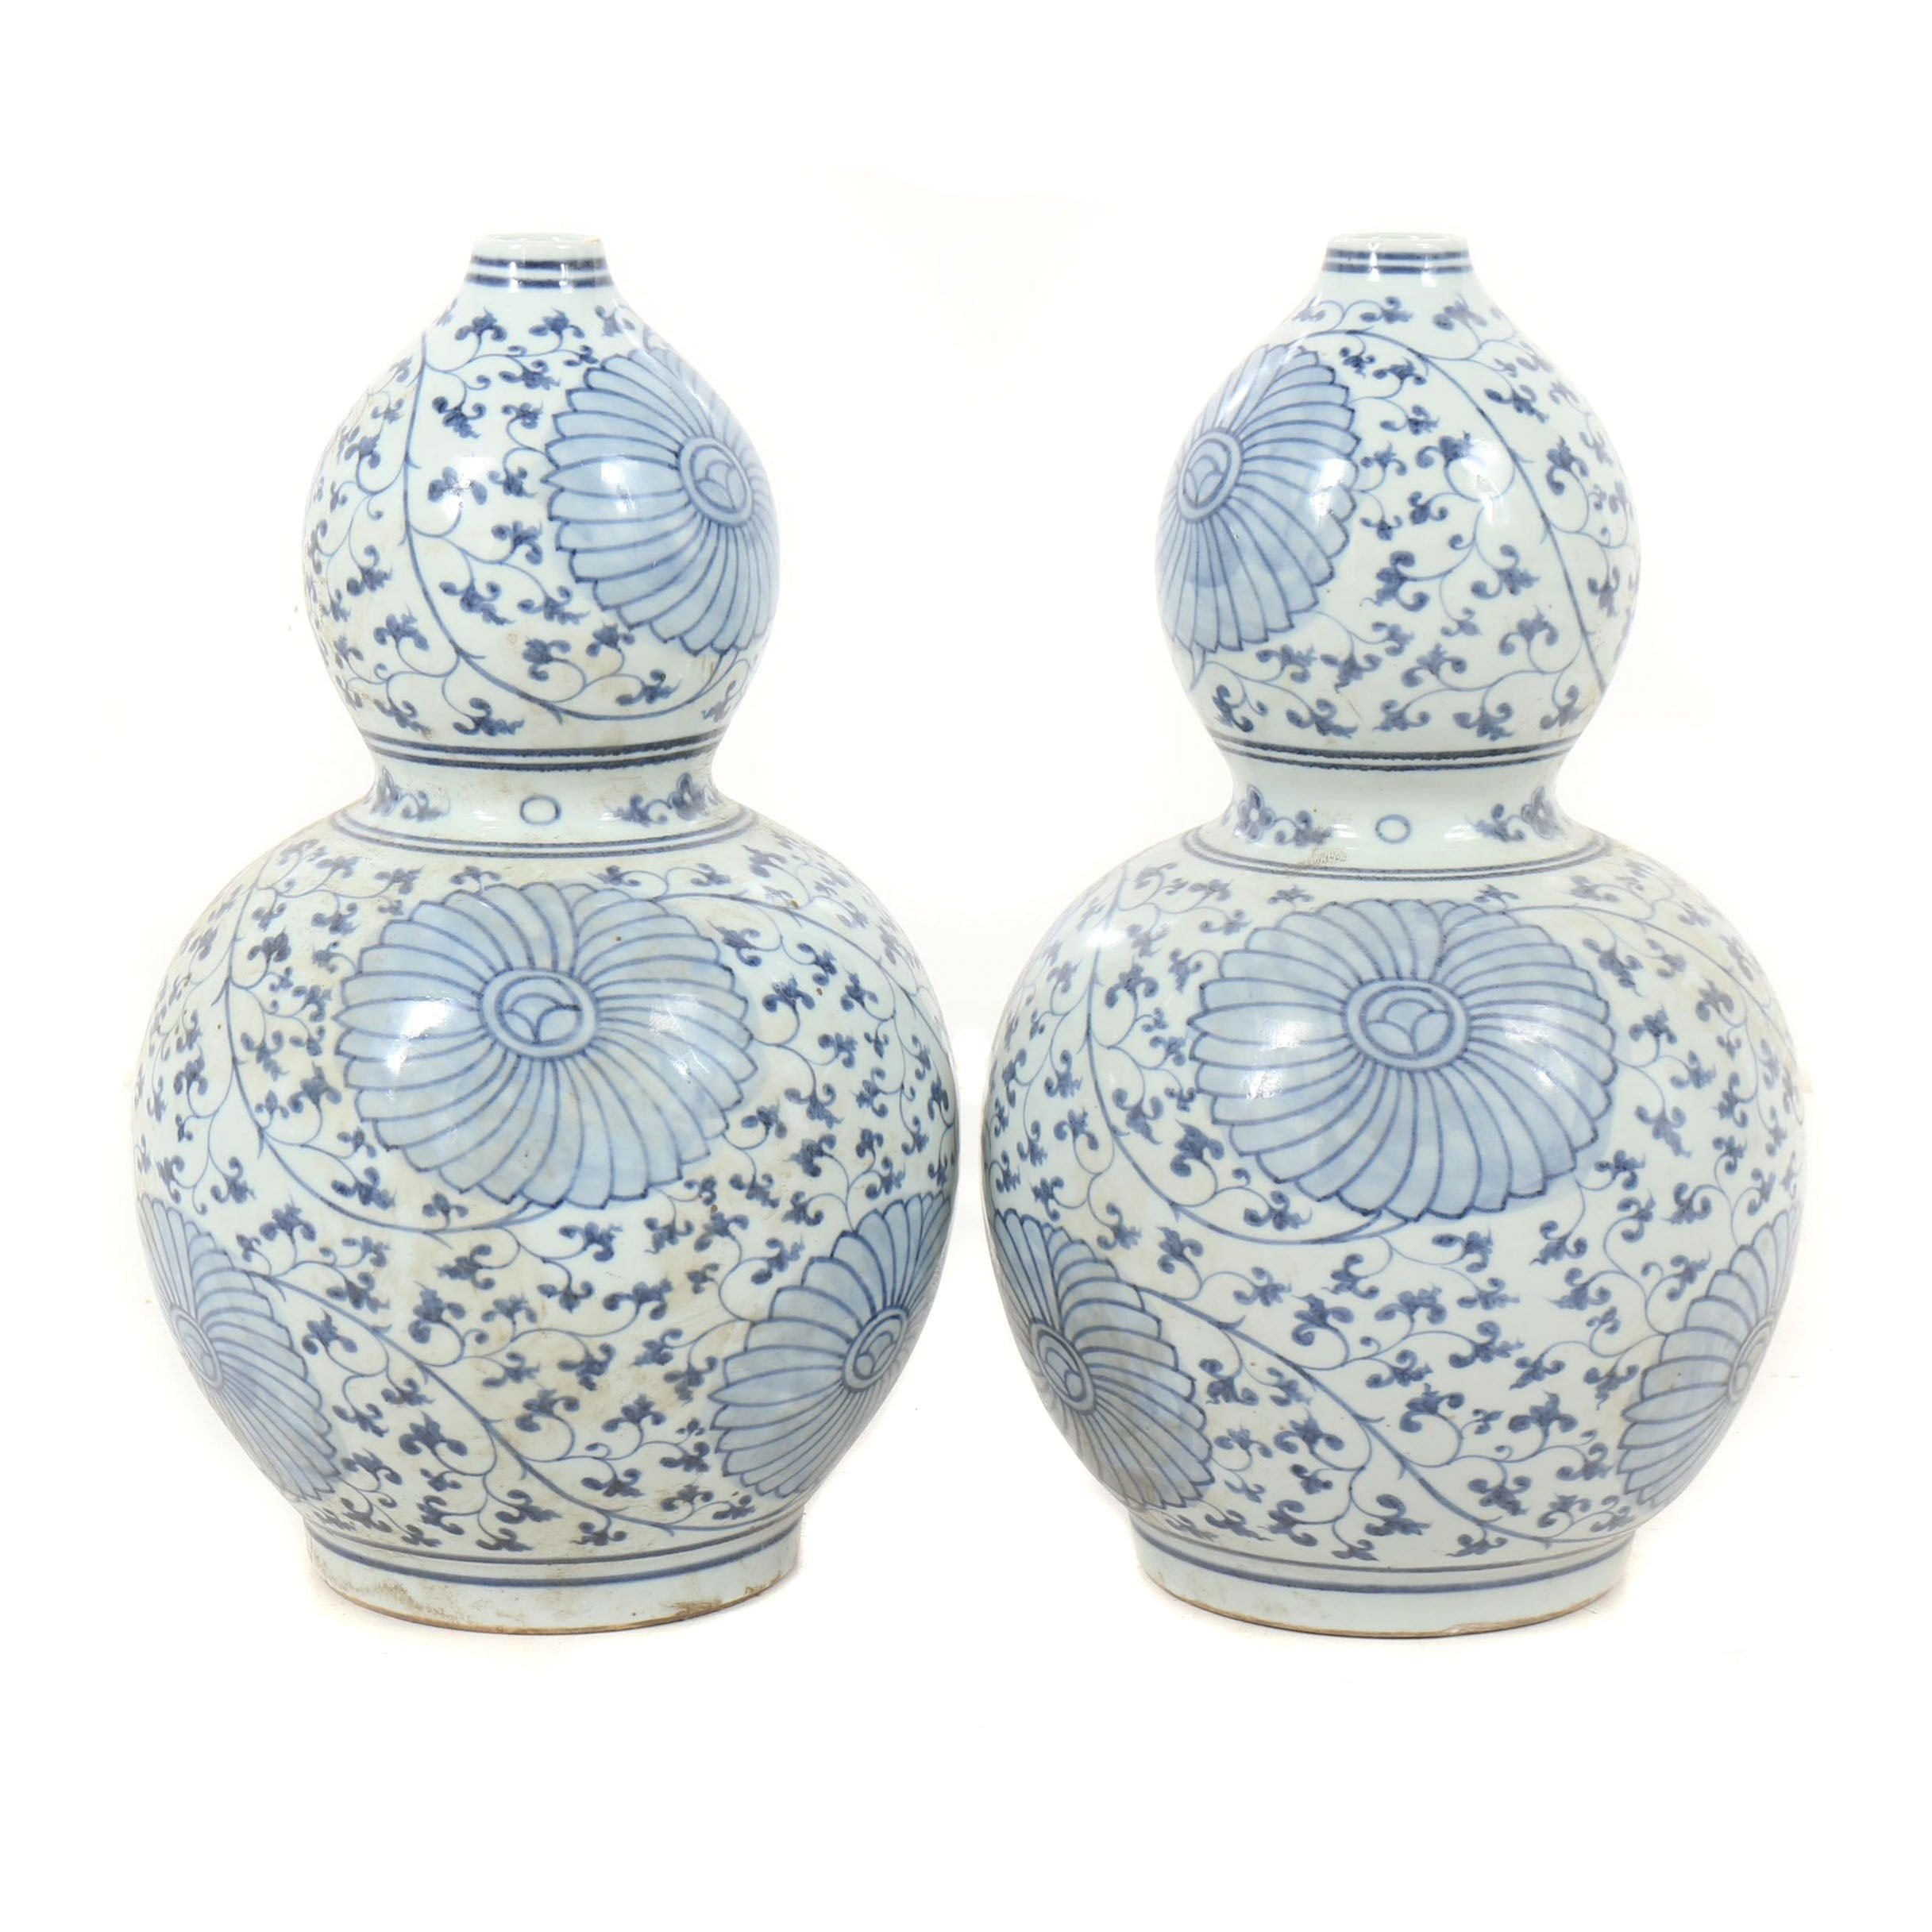 Chinese Blue and White Double Gourd Shaped Vases